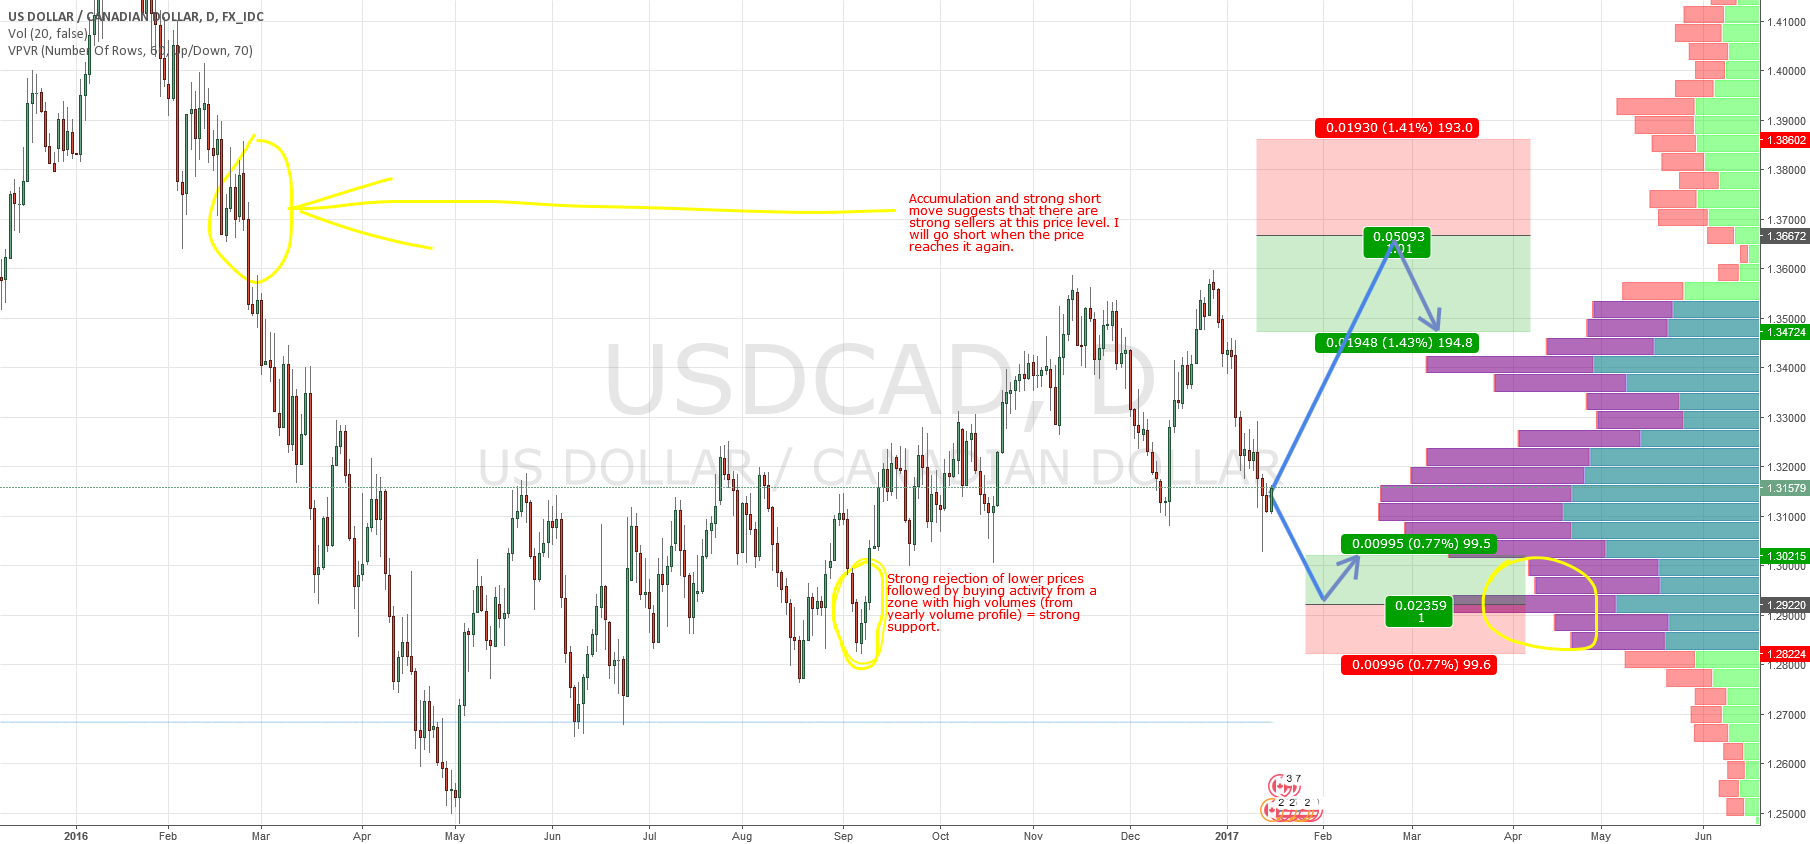 USD/CAD swing trades based on Market Profile and Price Action